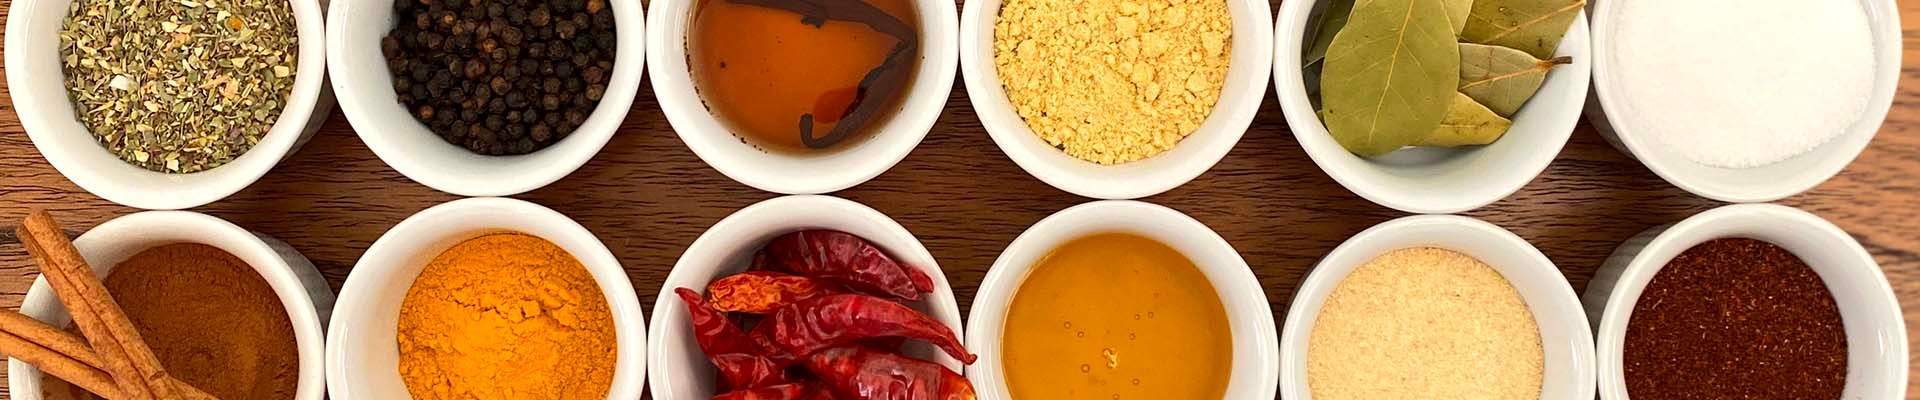 Processed-Food-spices-and-flavorings-1920x400.jpg